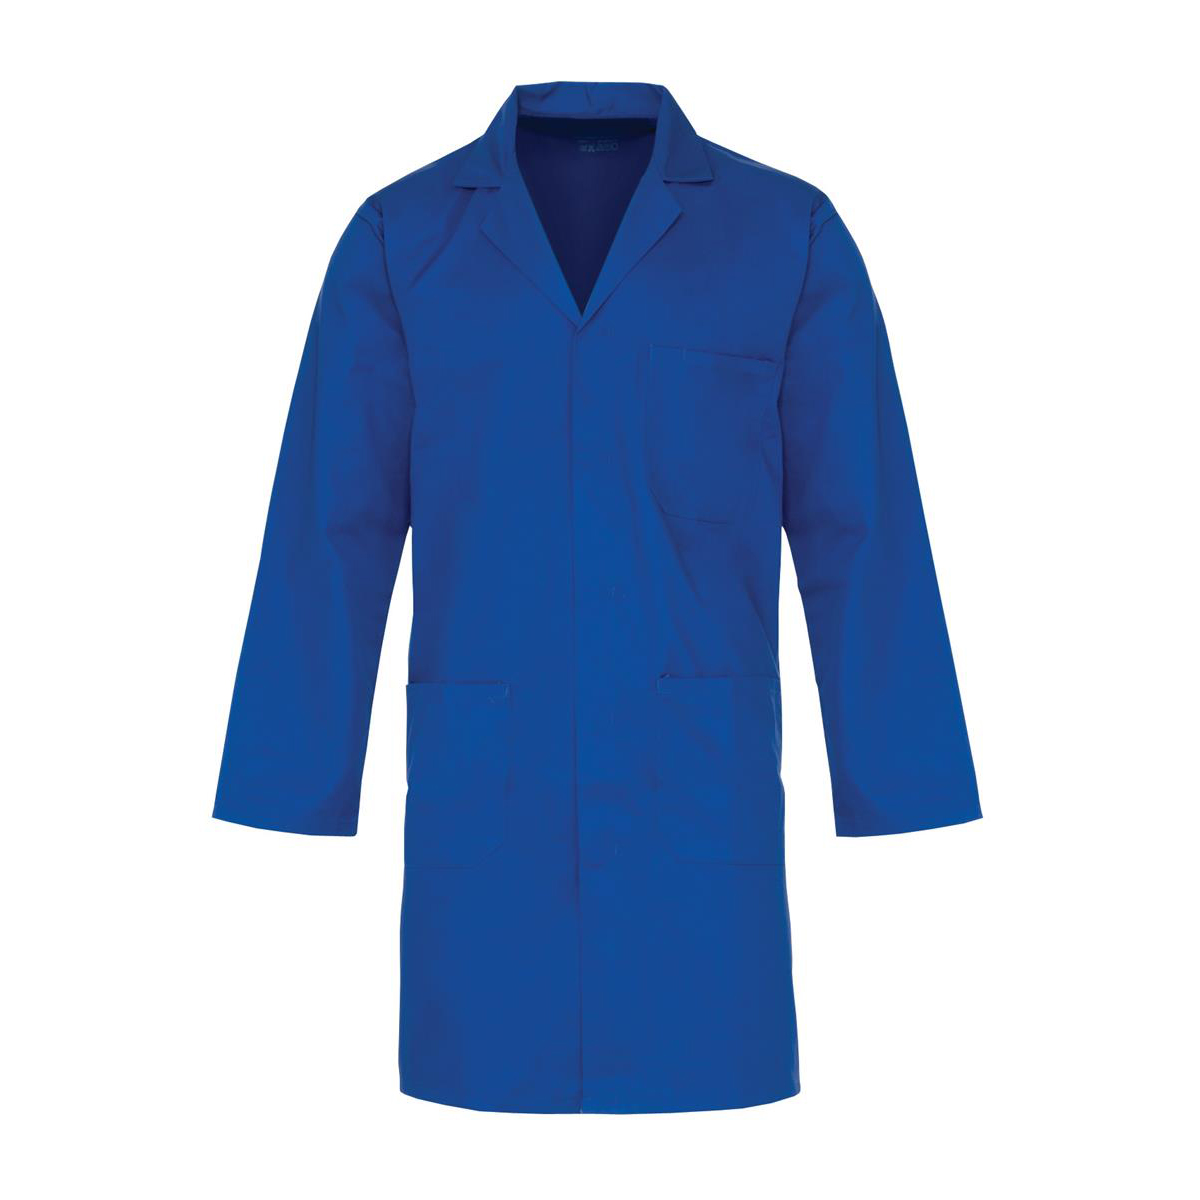 Safety Click Lab Coat Polycotton with 3 Pockets Small Navy Ref PCWCN38 *Approx 3 Day Leadtime*